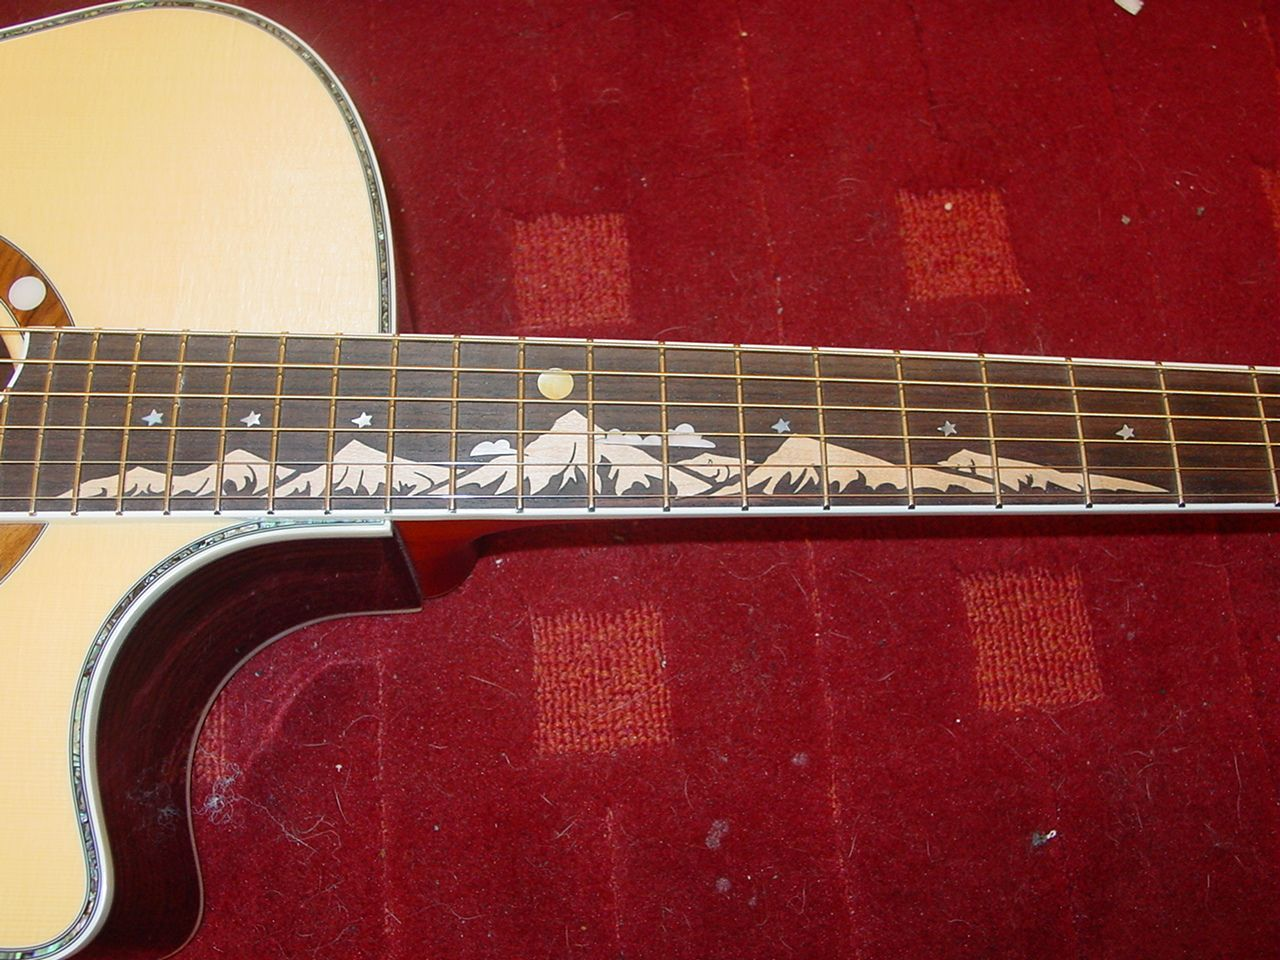 so you want to put mountains on a fretboard yes